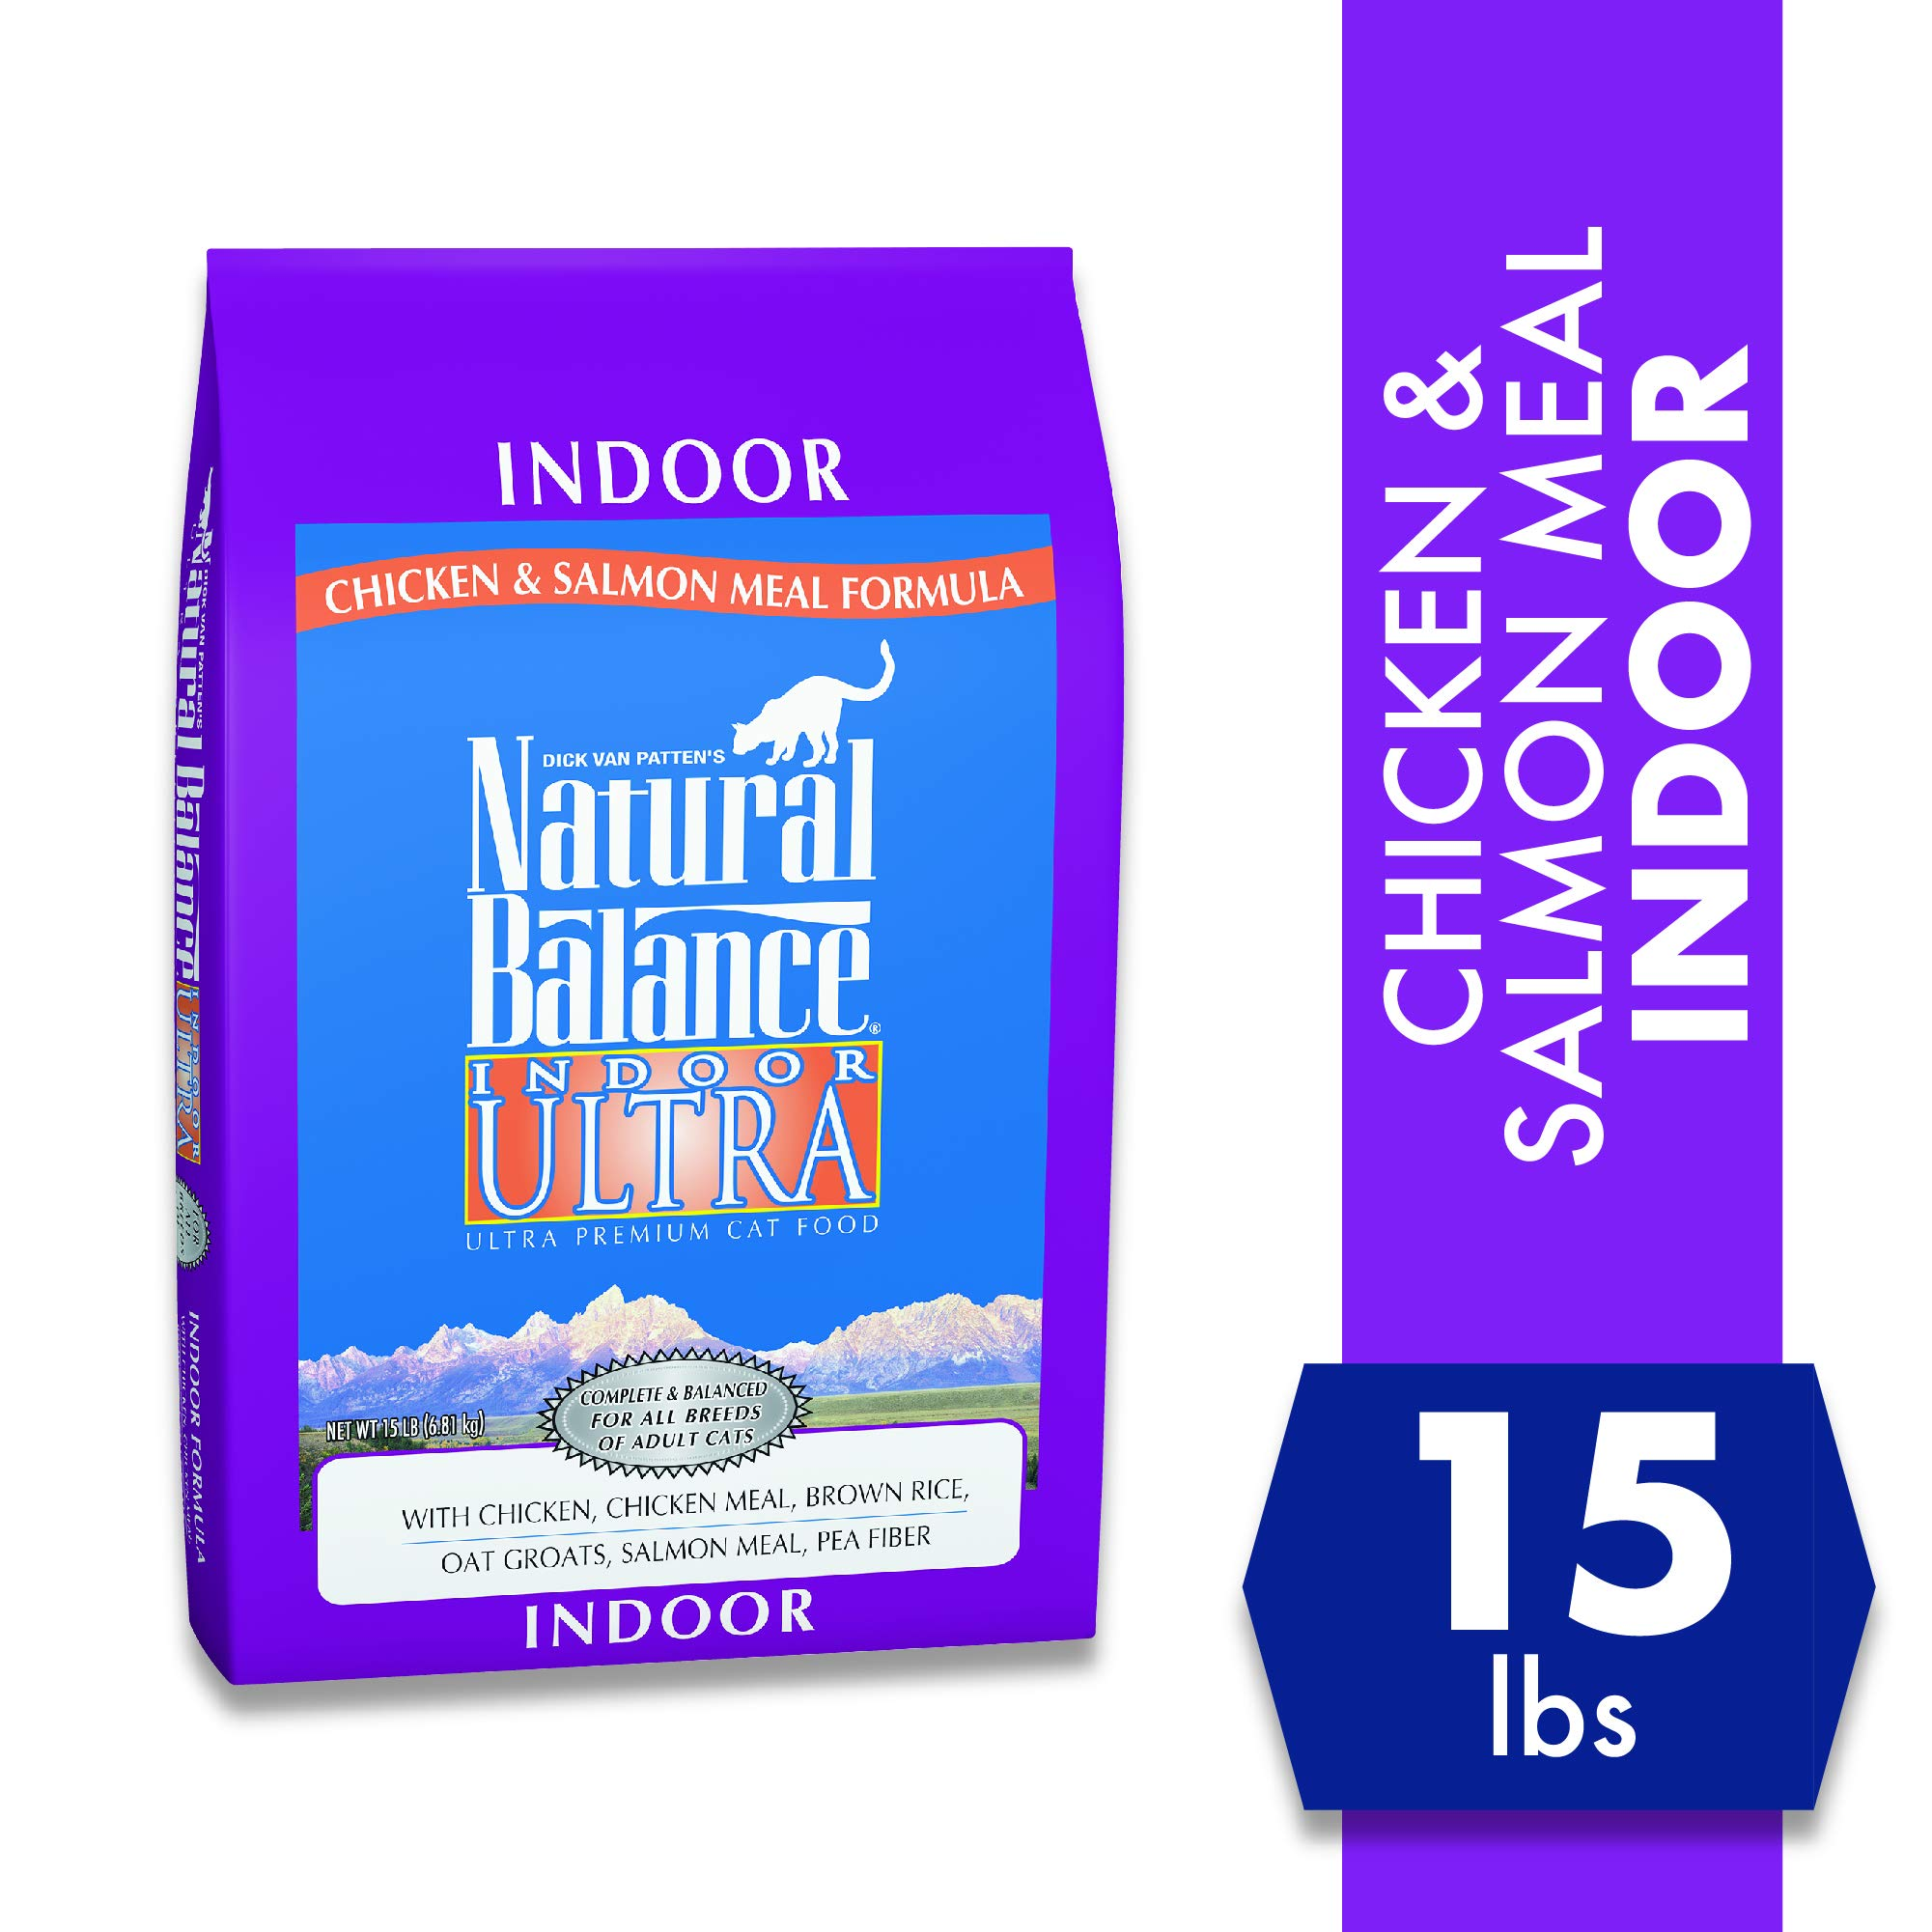 Natural Balance Indoor Ultra Chicken Meal & Salmon Meal Formula Dry Cat Food, 15-Pound by Natural Balance